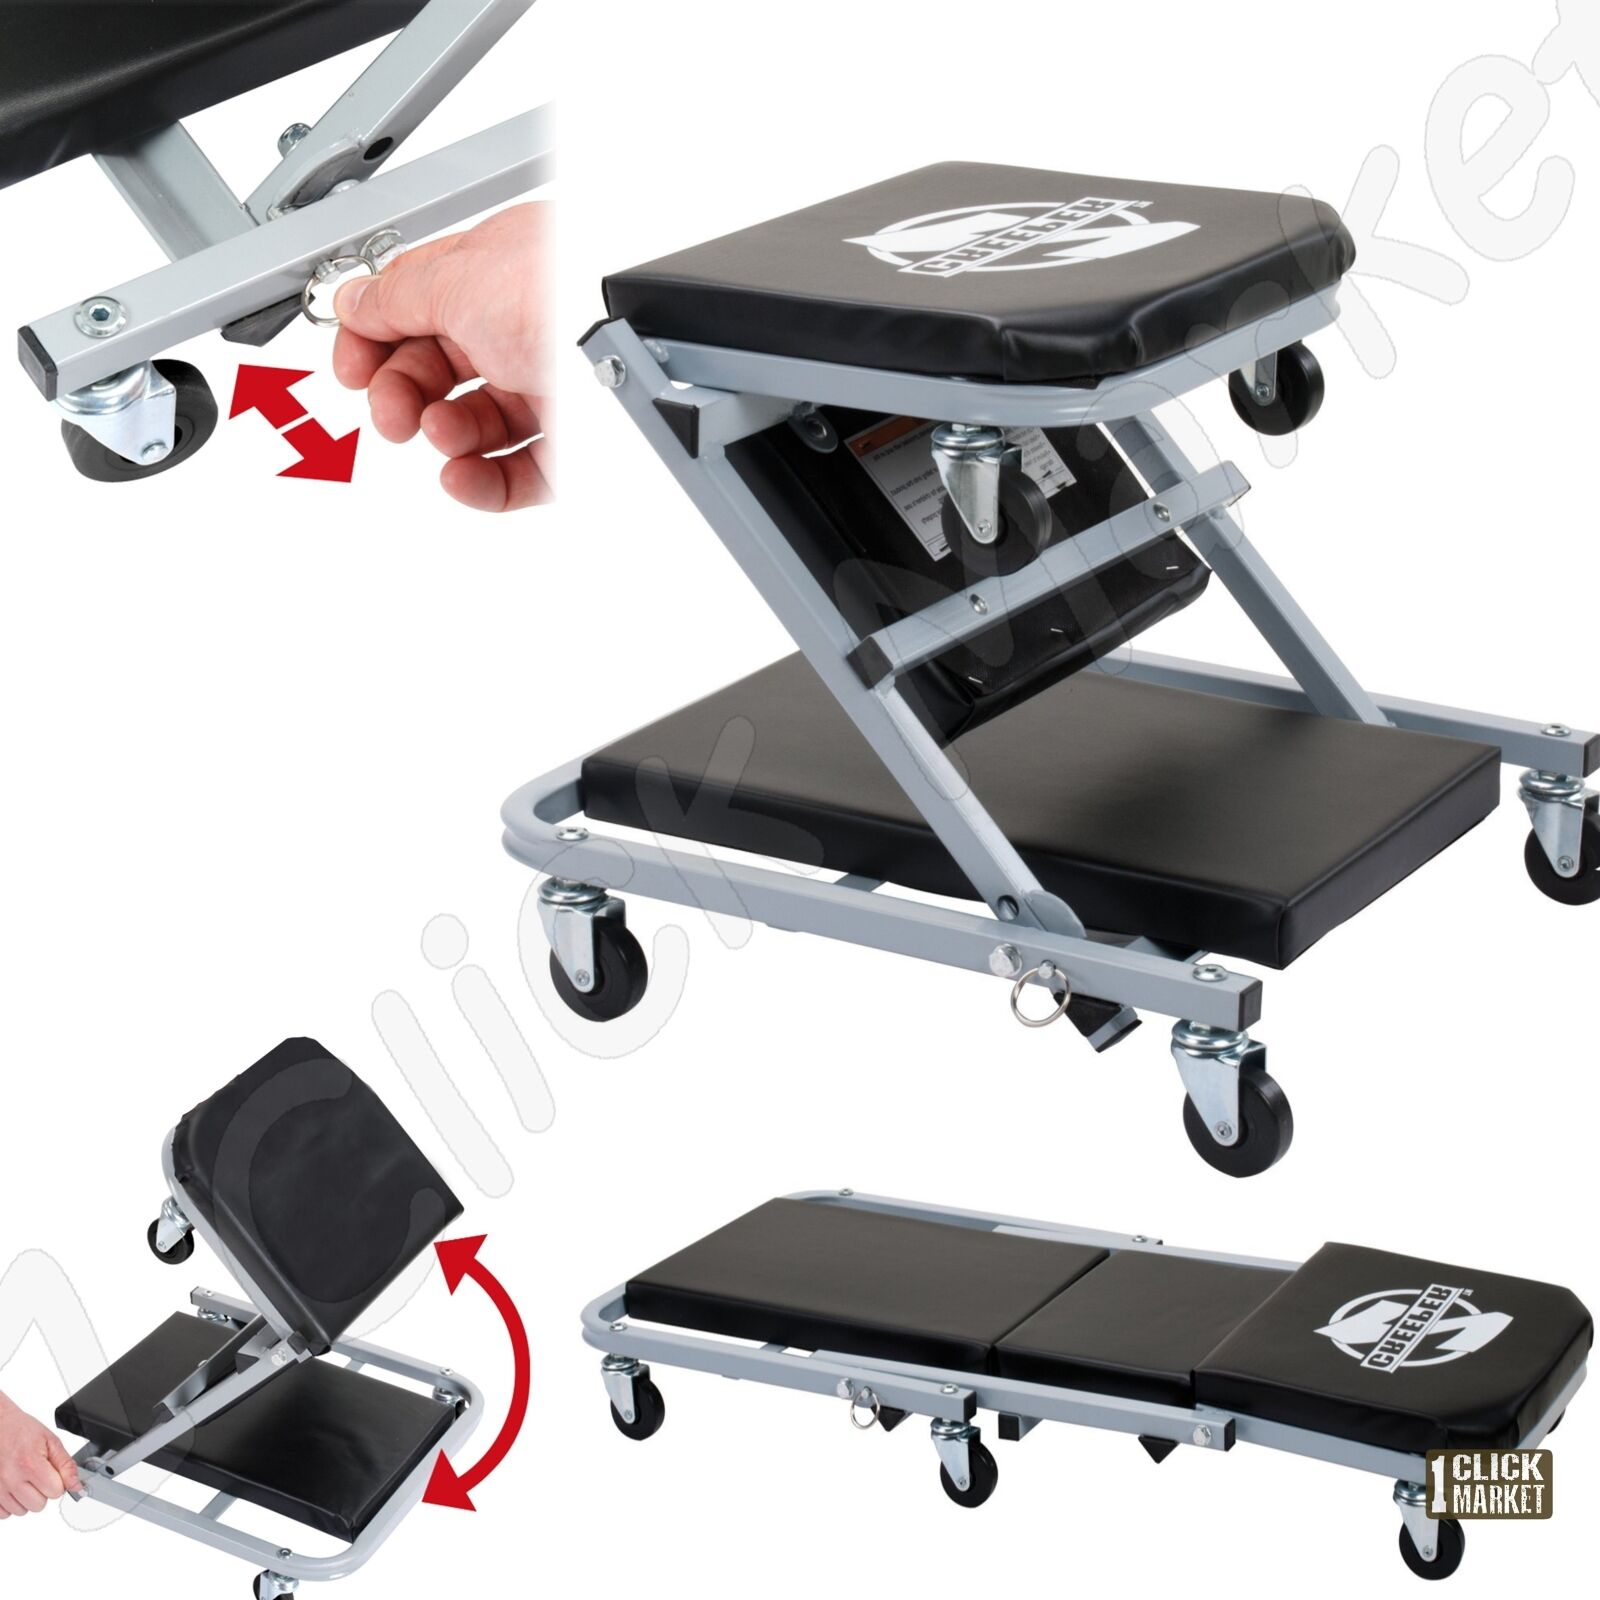 Rolling Mechanic Seat Stool Chair Tray Repair Tools Shop ...  |Auto Mechanic Chairs